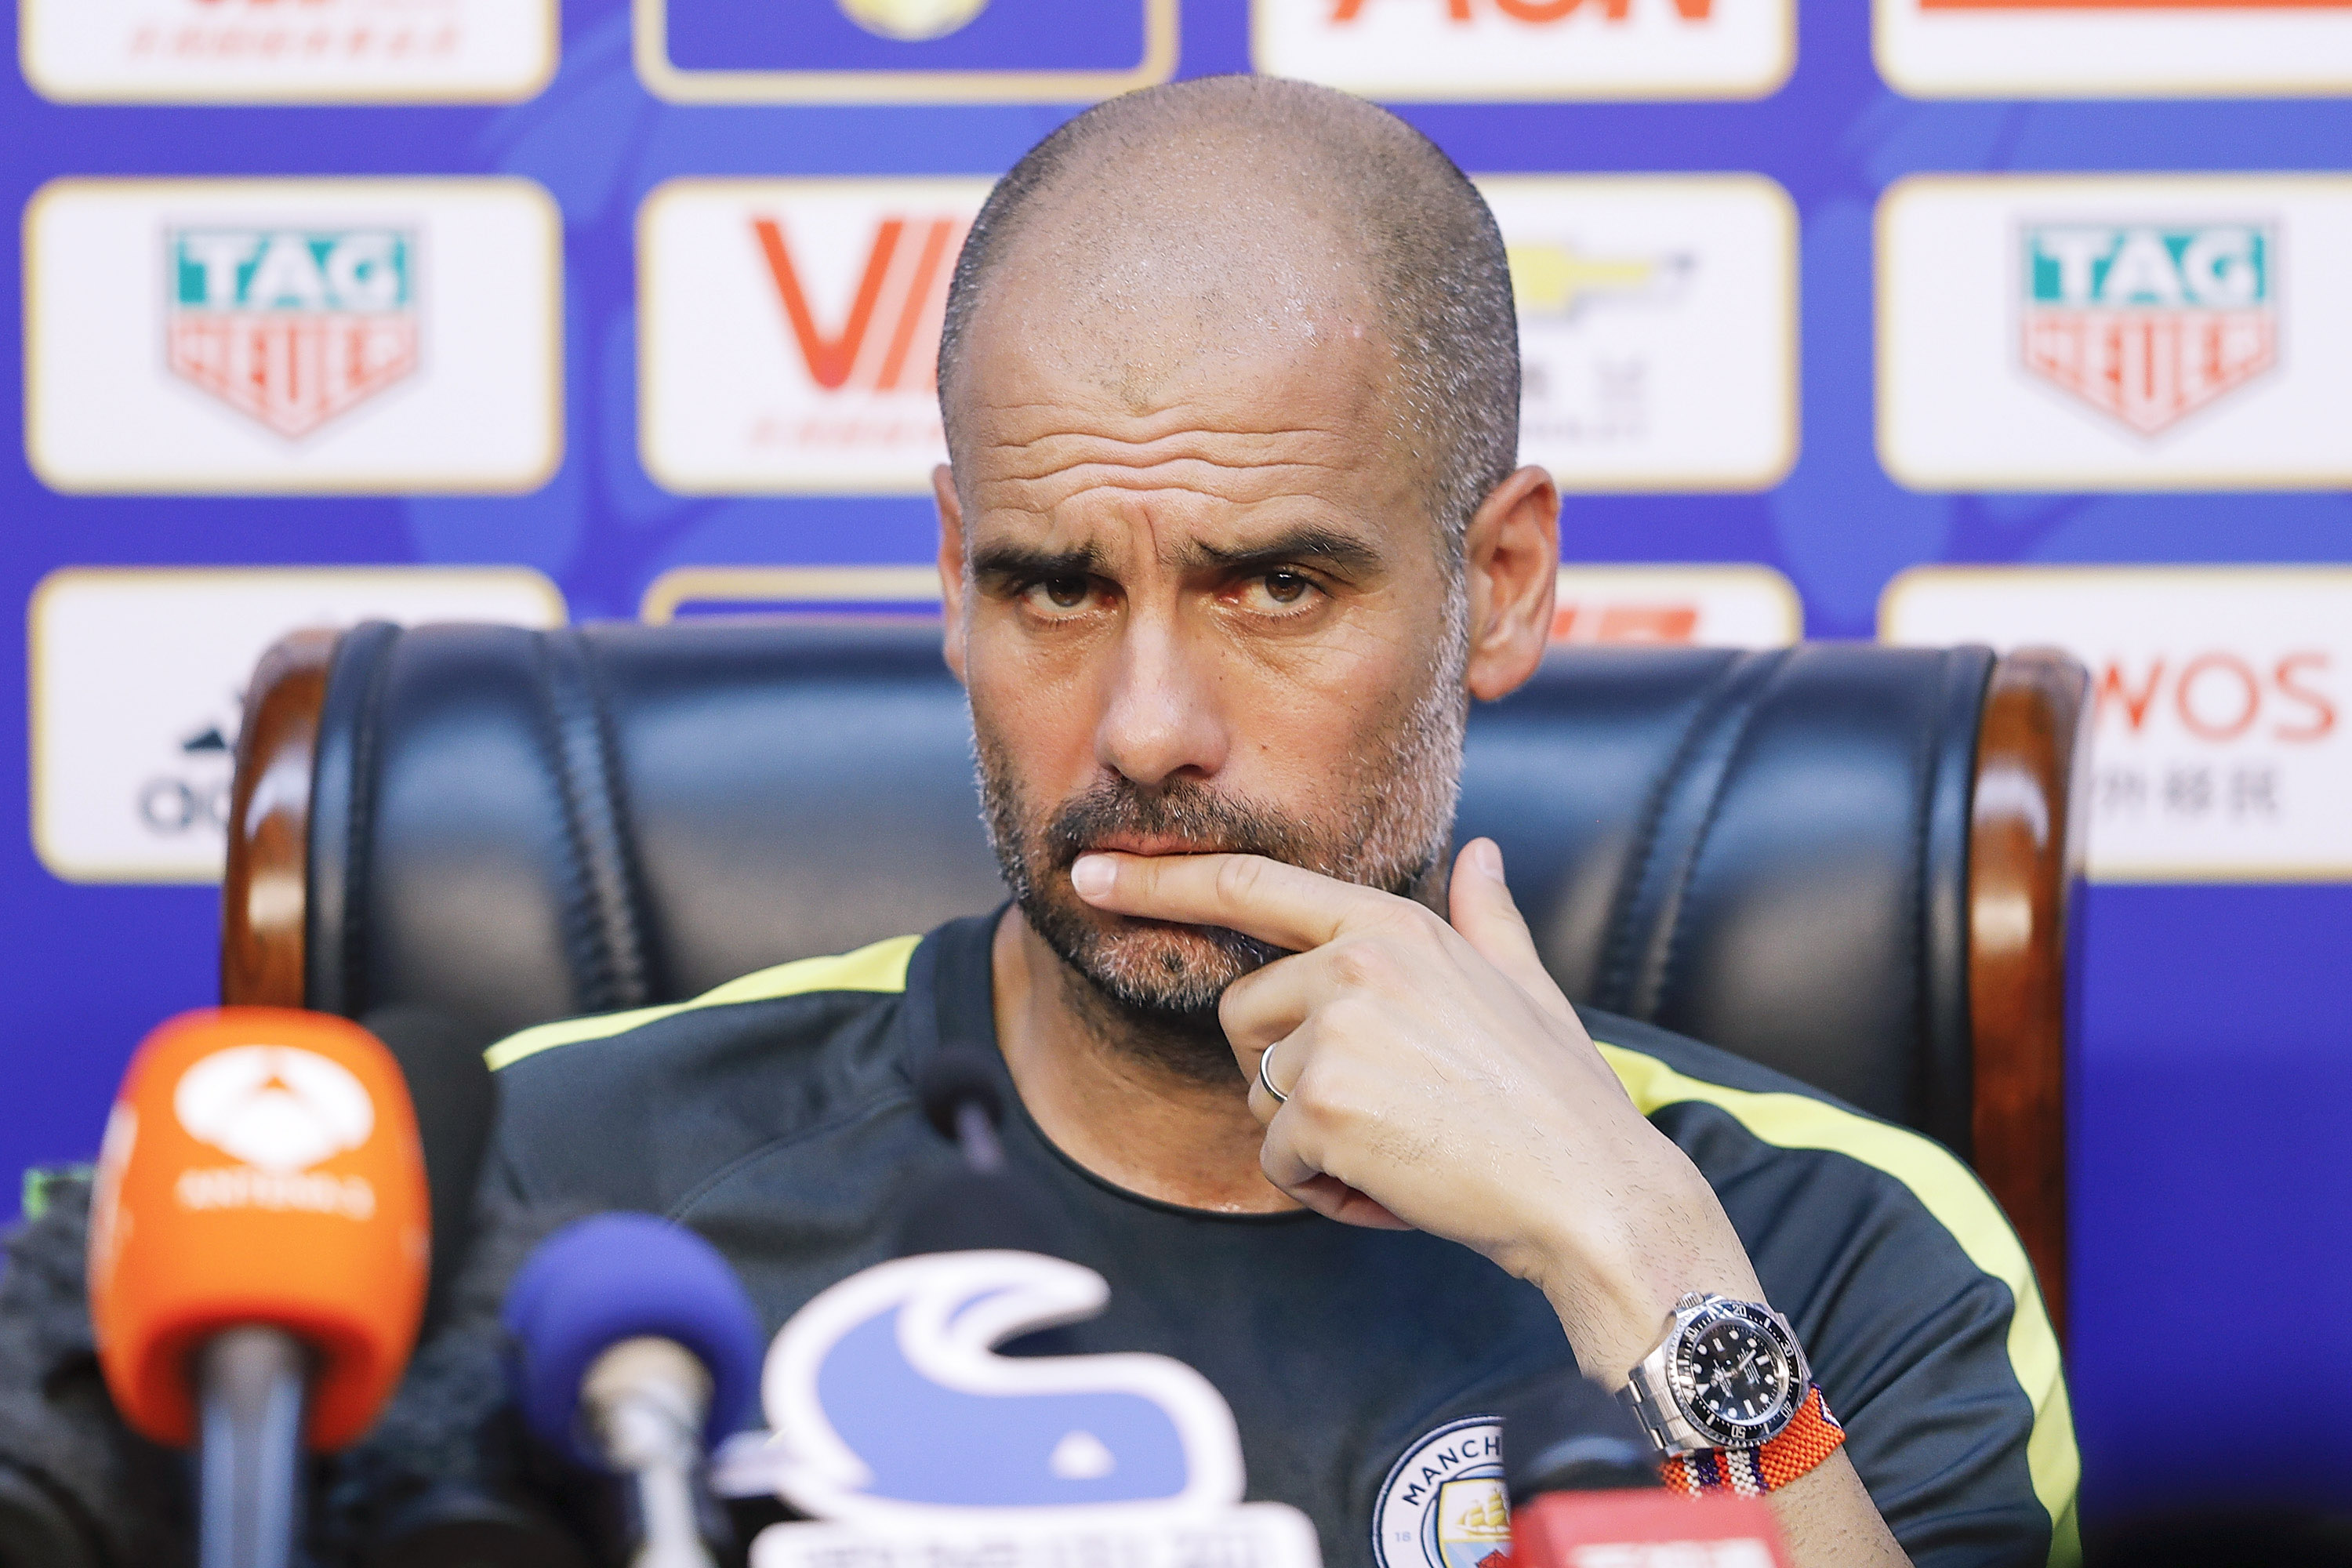 Manchester City: Pep reveals more about himself than Kompany's return